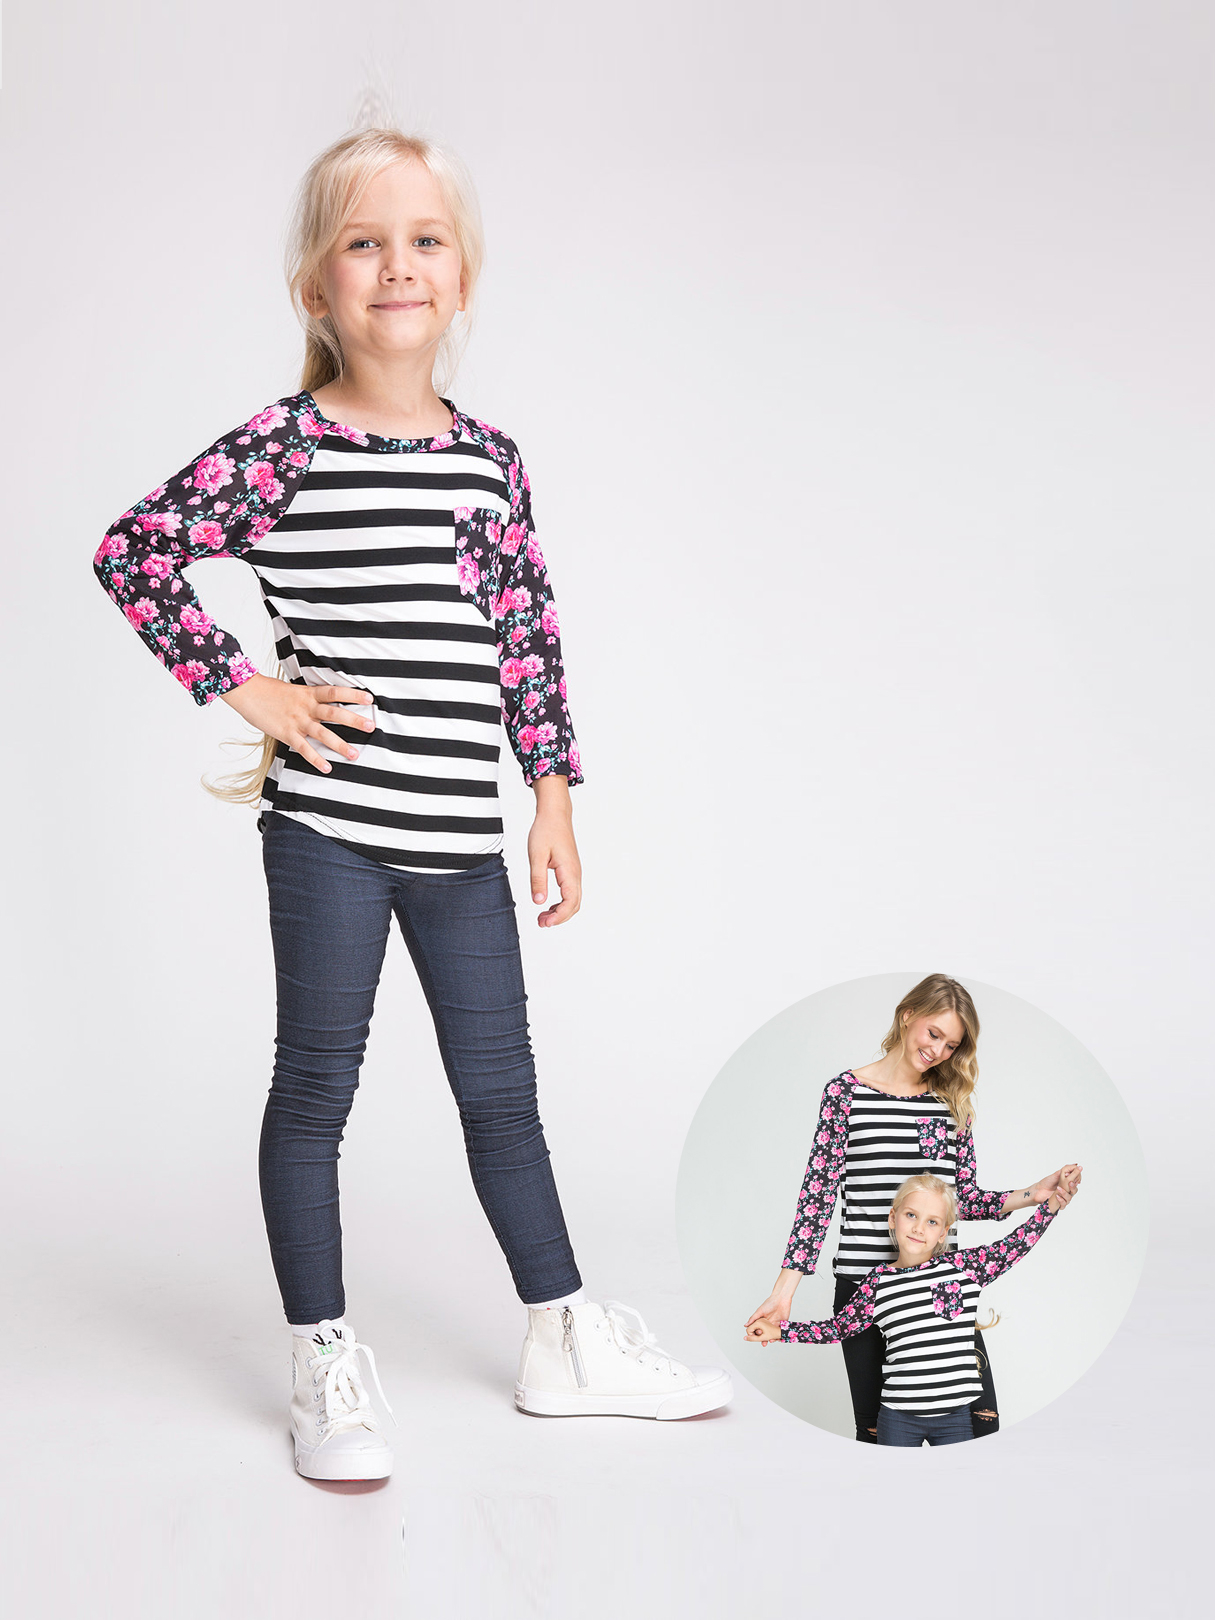 Floral Striped Print Mom and Daughter Matching T-Shirts - Daughter